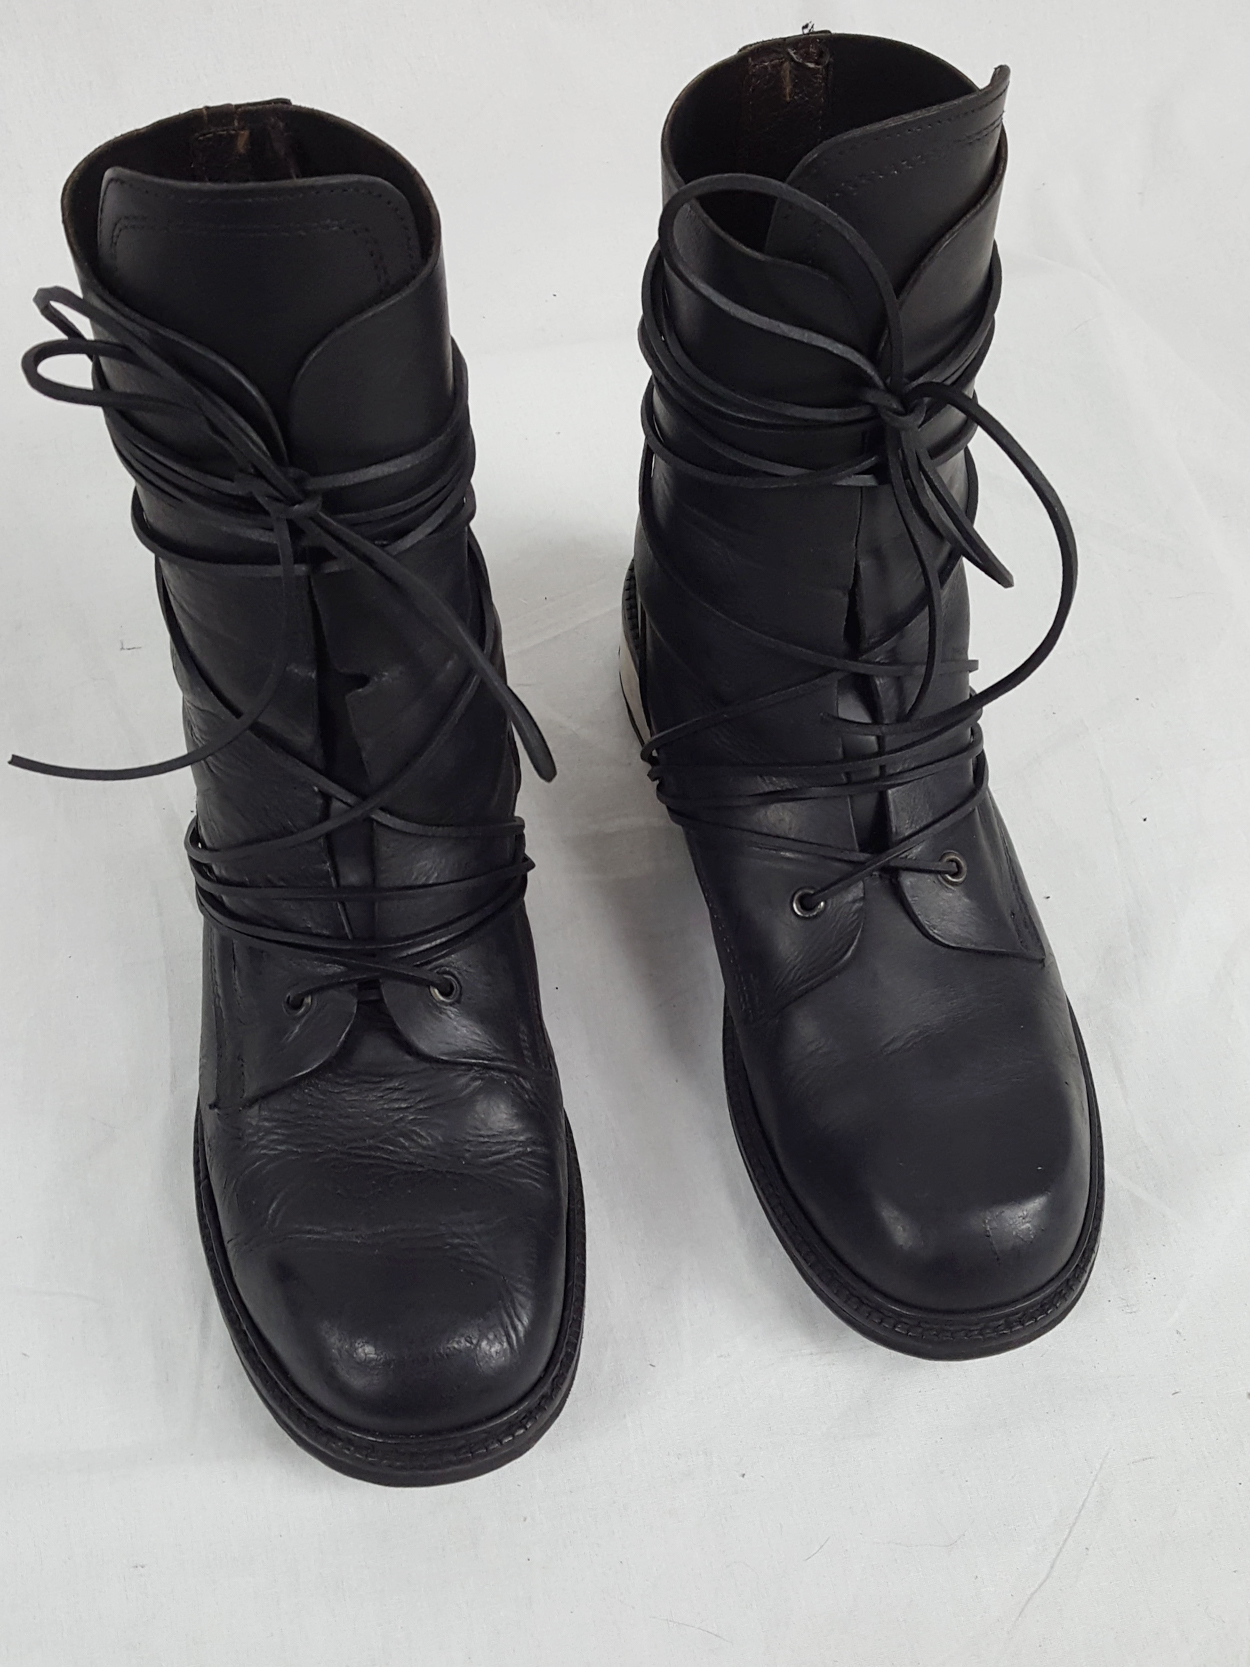 Dirk Bikkembergs black tall boots with laces through the